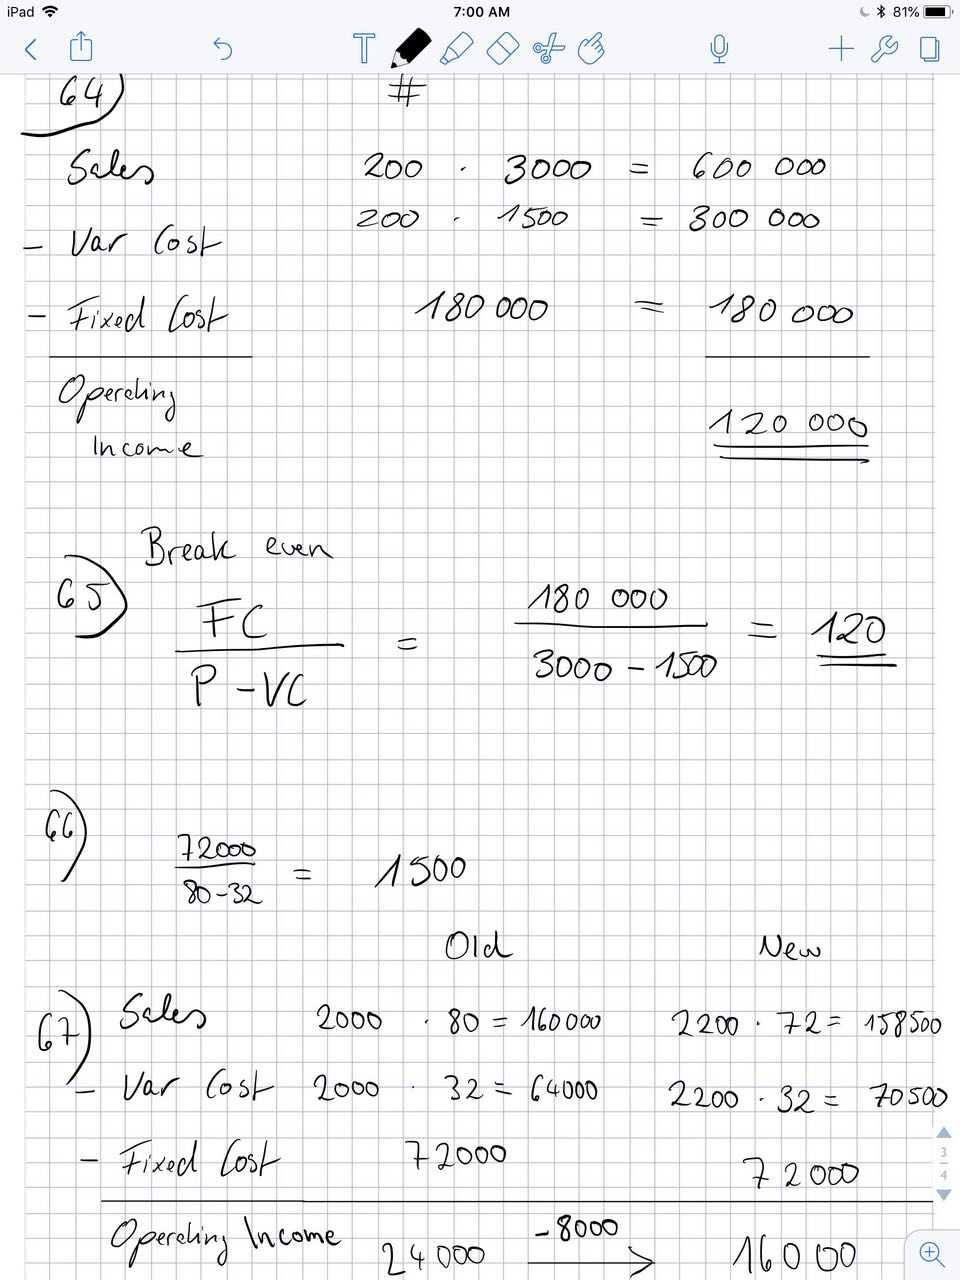 absorbtion costing vs variable costing The objectives of this research are to explain the differences between an absorption costing and a variable costing system, prepare profit statements based on variable costing and absorption costing system, explain the difference in profits between variable and absorption costing profit calculations, explain the arguments.